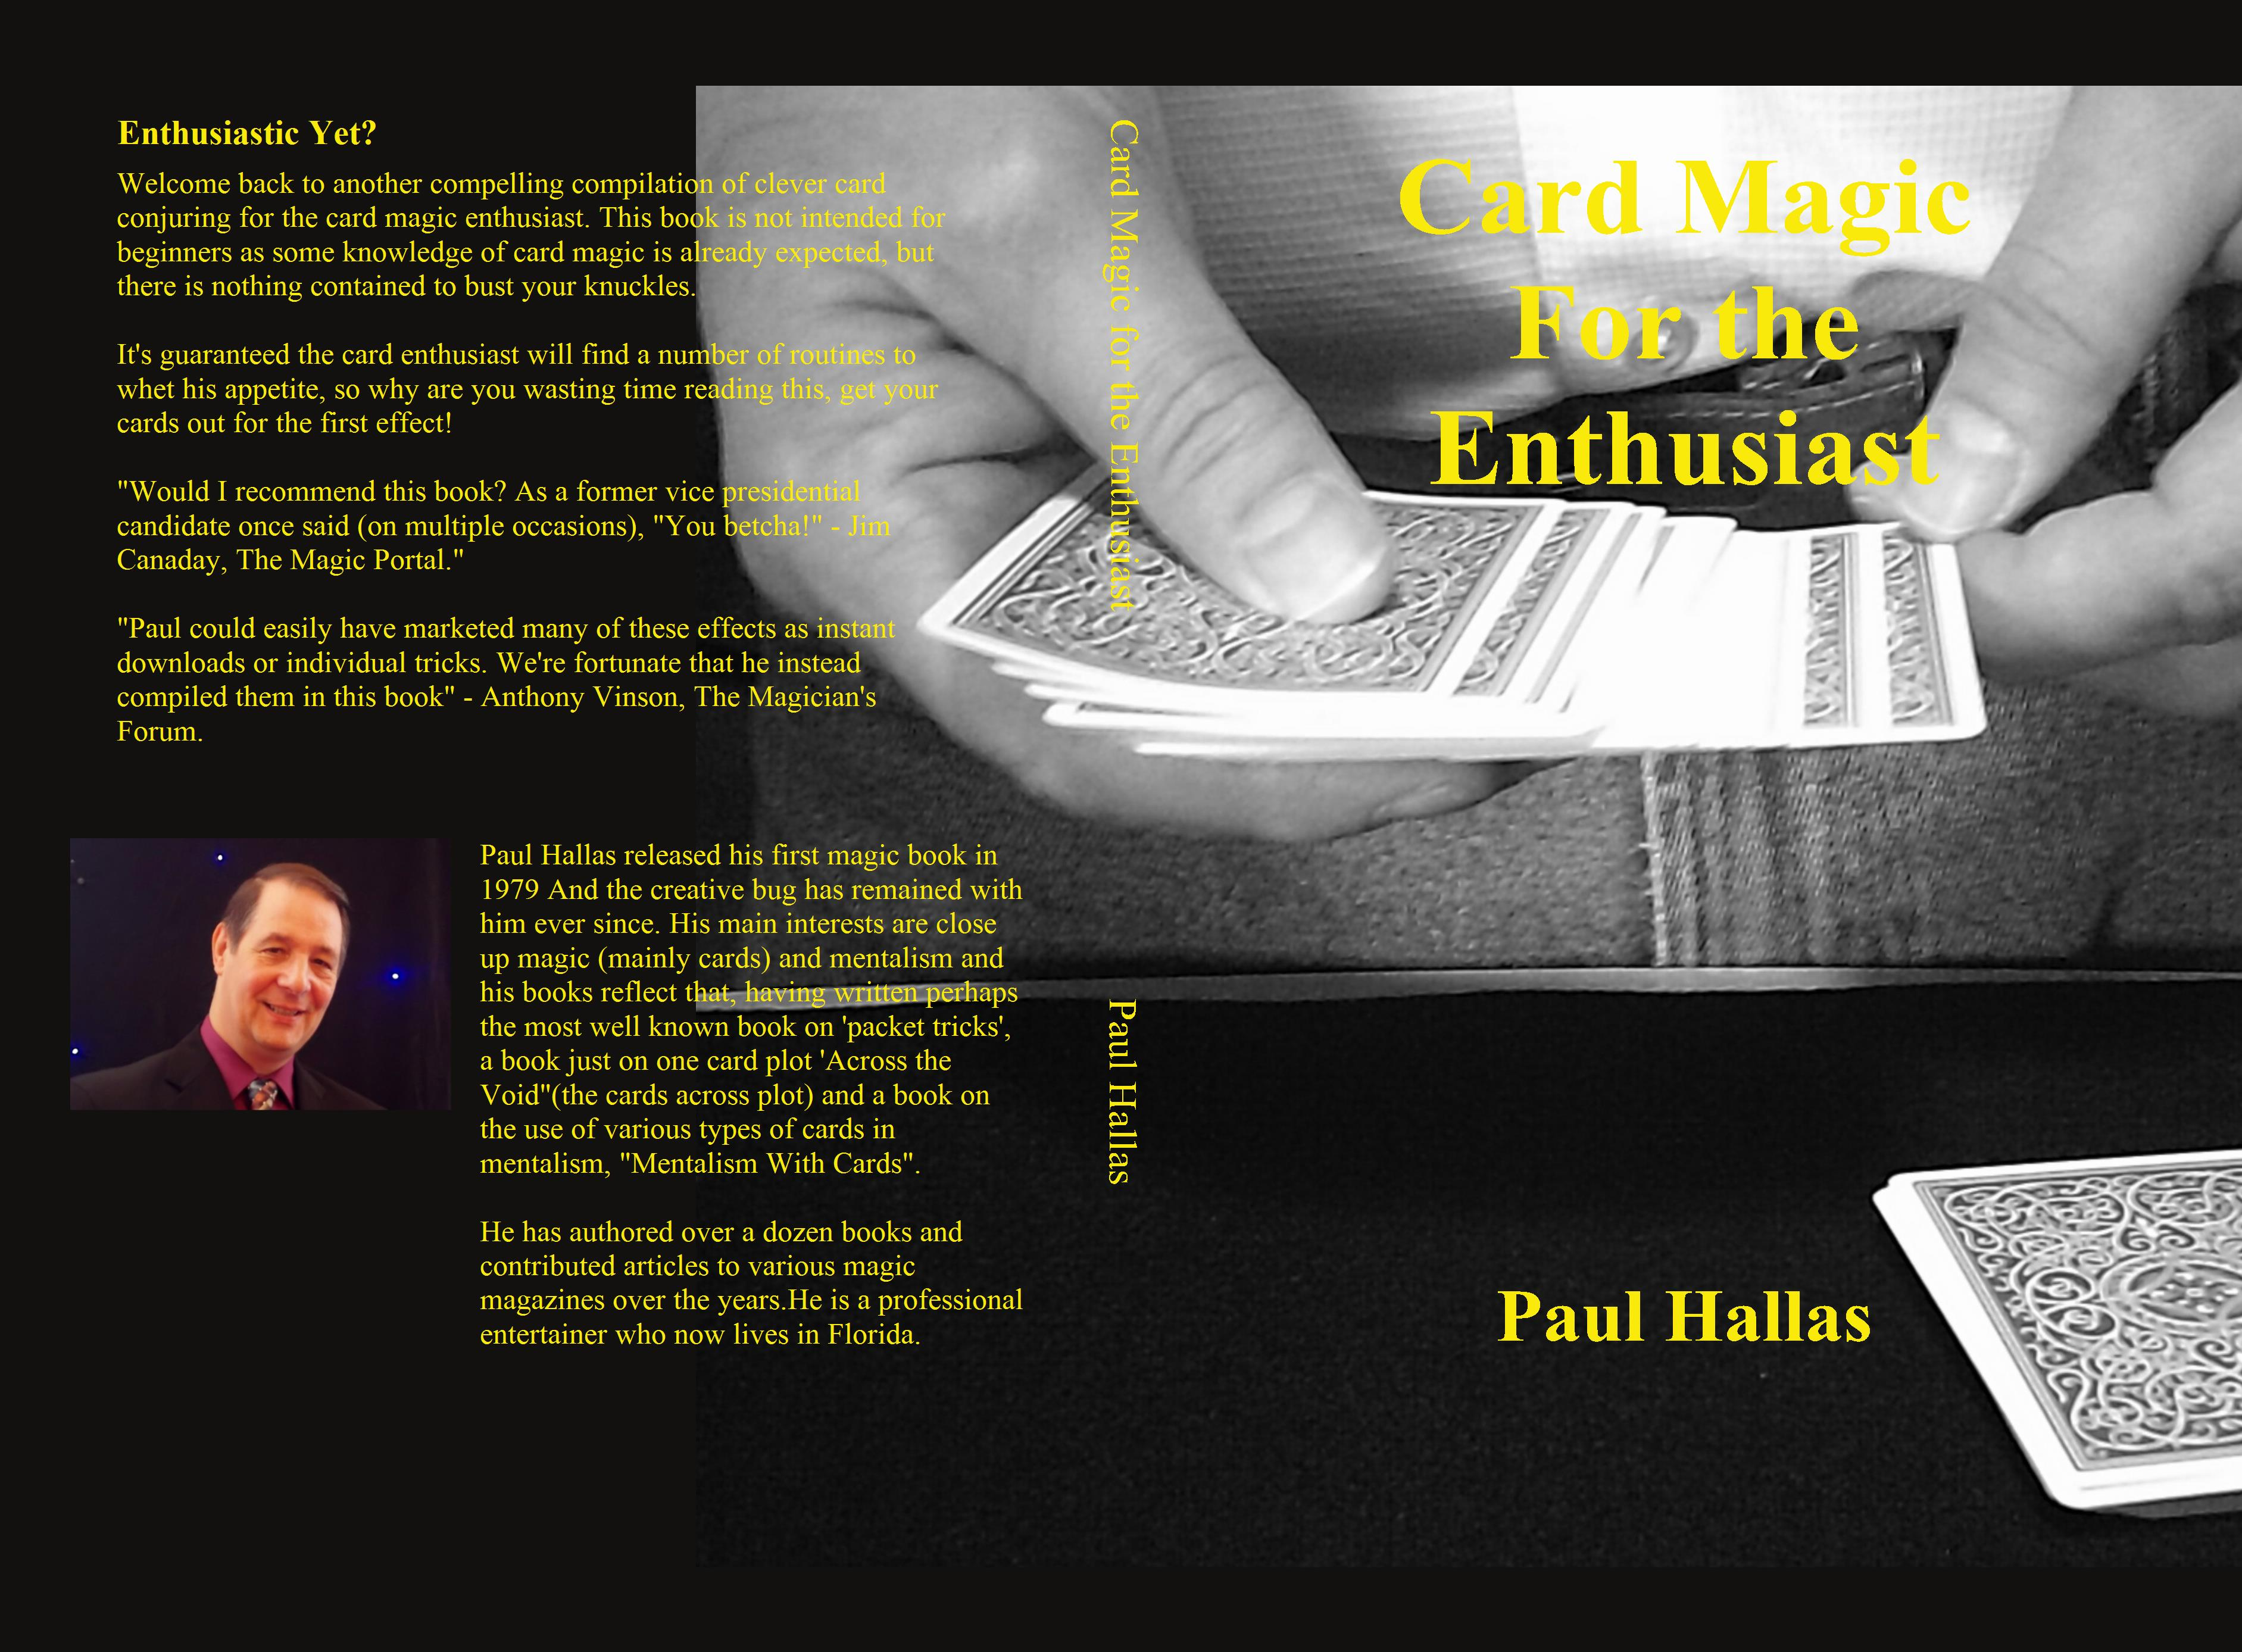 Card Magic for the Enthusiast cover image